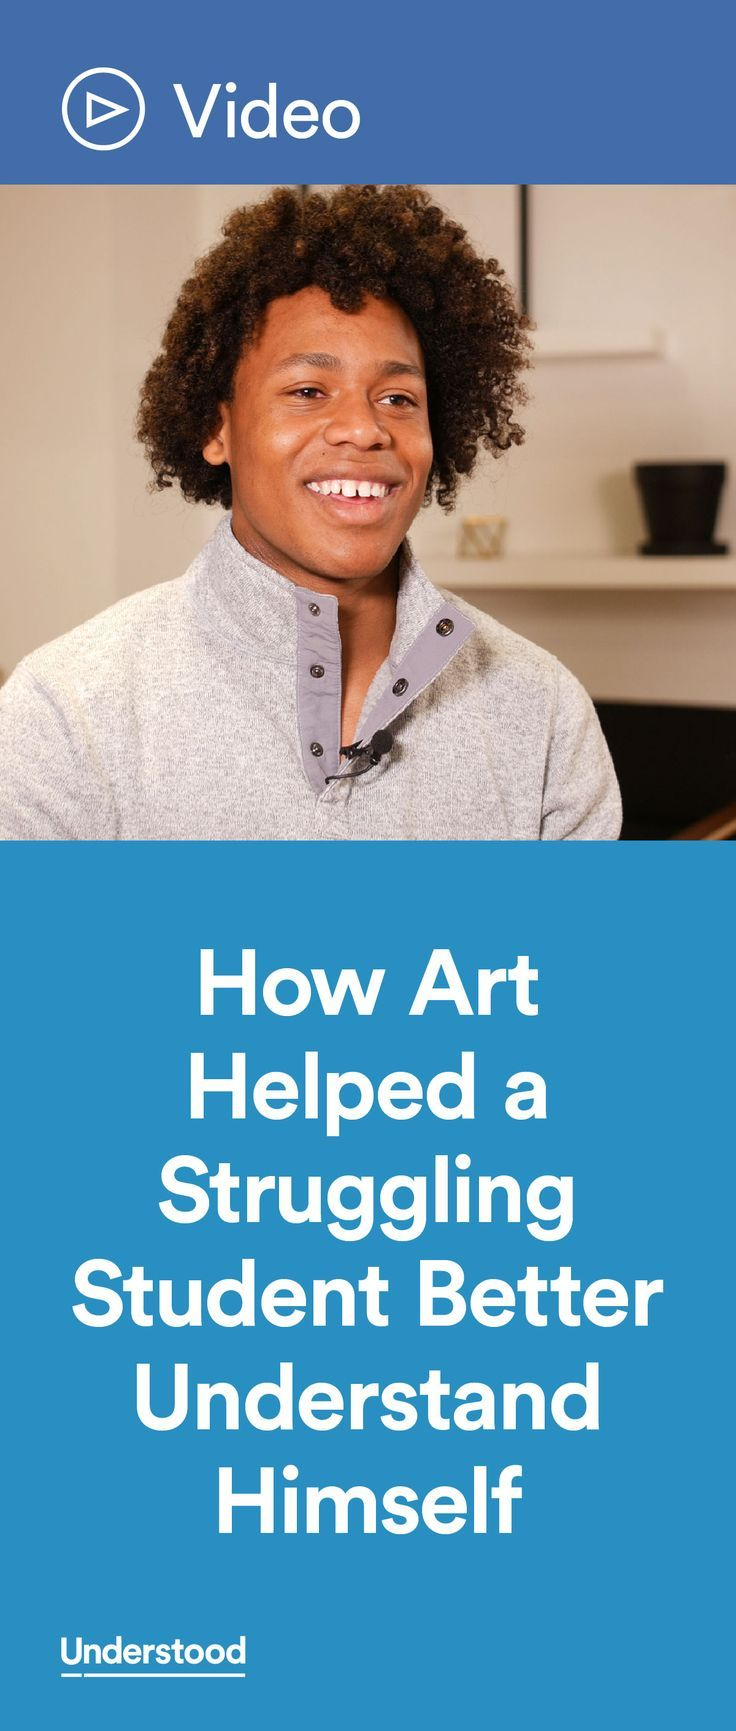 Student Marcos Allen talks about when he discovered this talent, and how art helped build his confidence while he was struggling academically with dyslexia, dysgraphia, dyscalculia and ADHD.